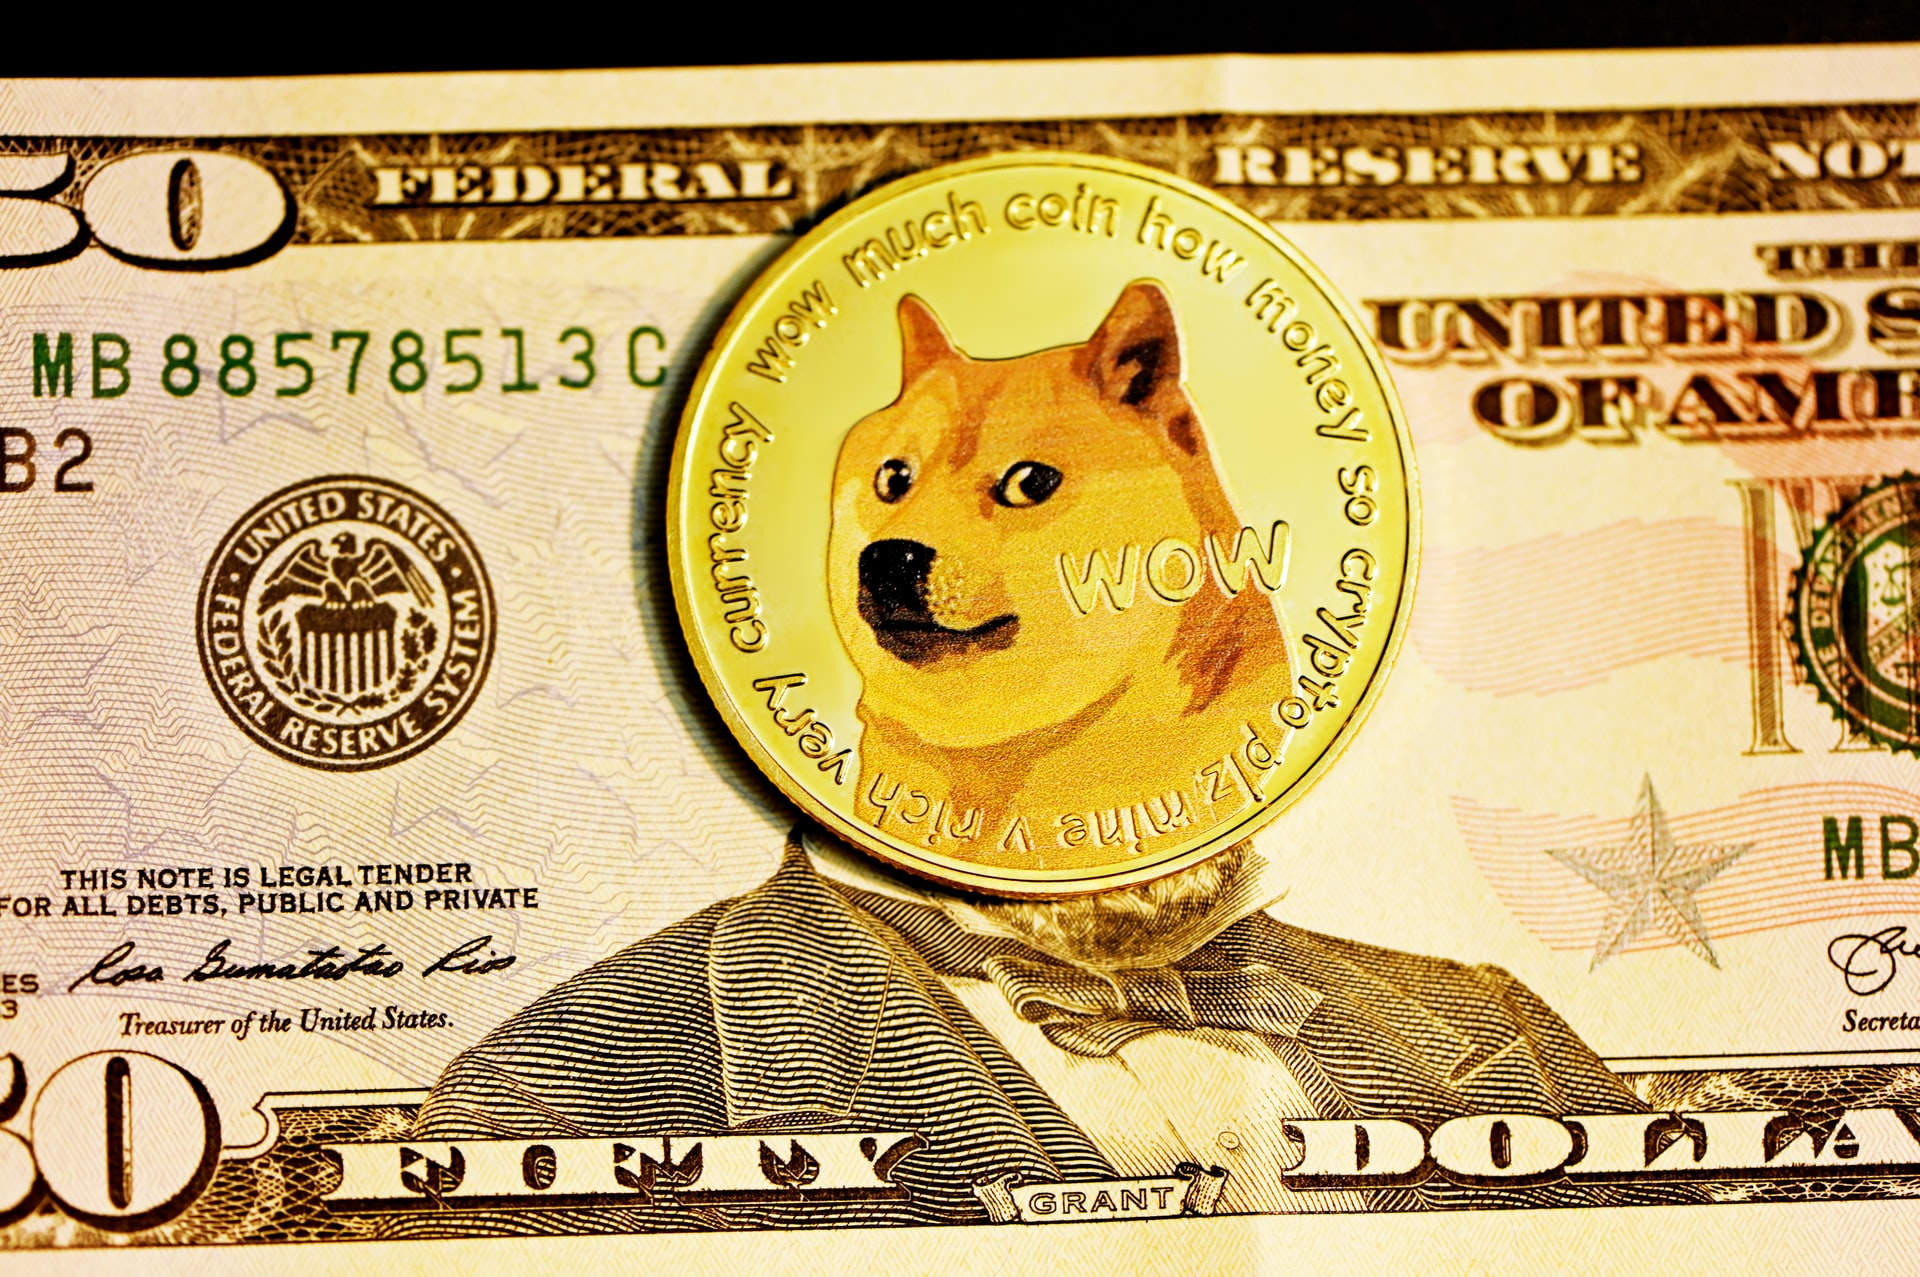 Doge coin bank note